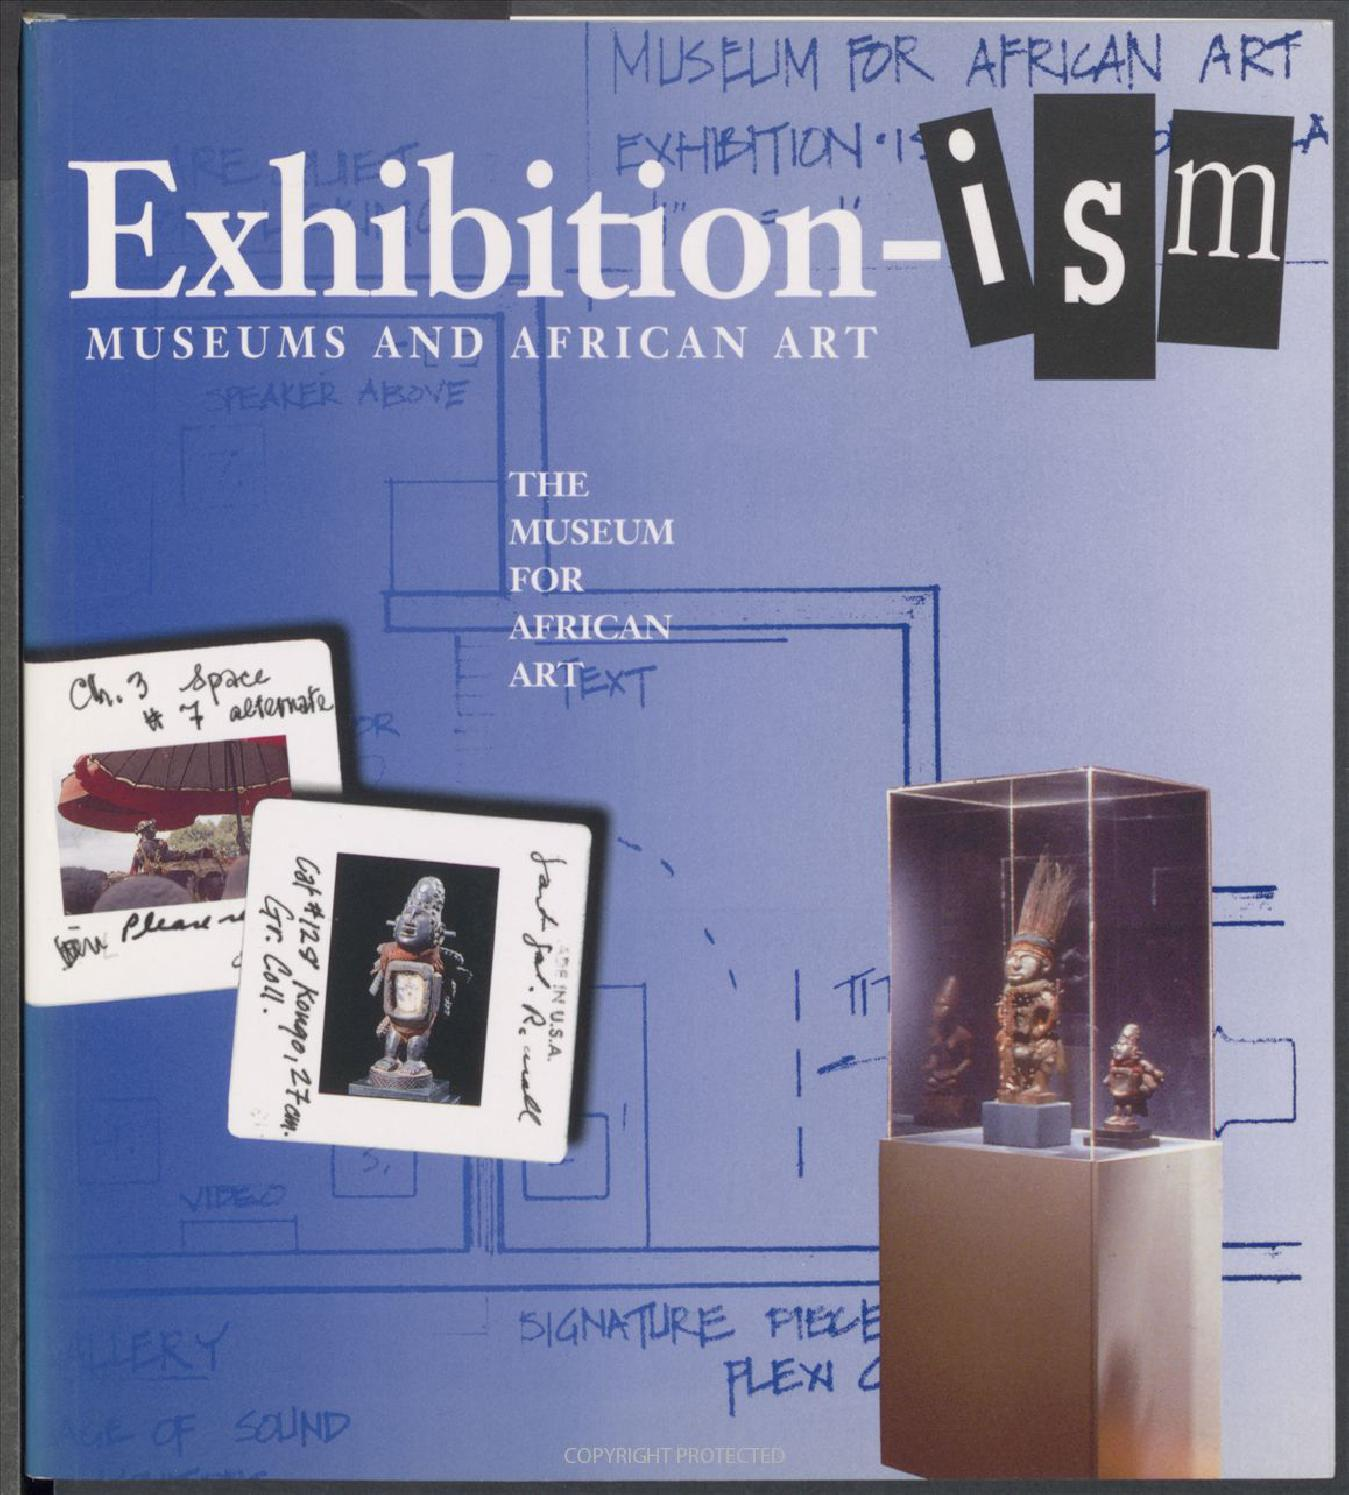 Exhibition-ism Museums and African Art by The Africa Center - issuu